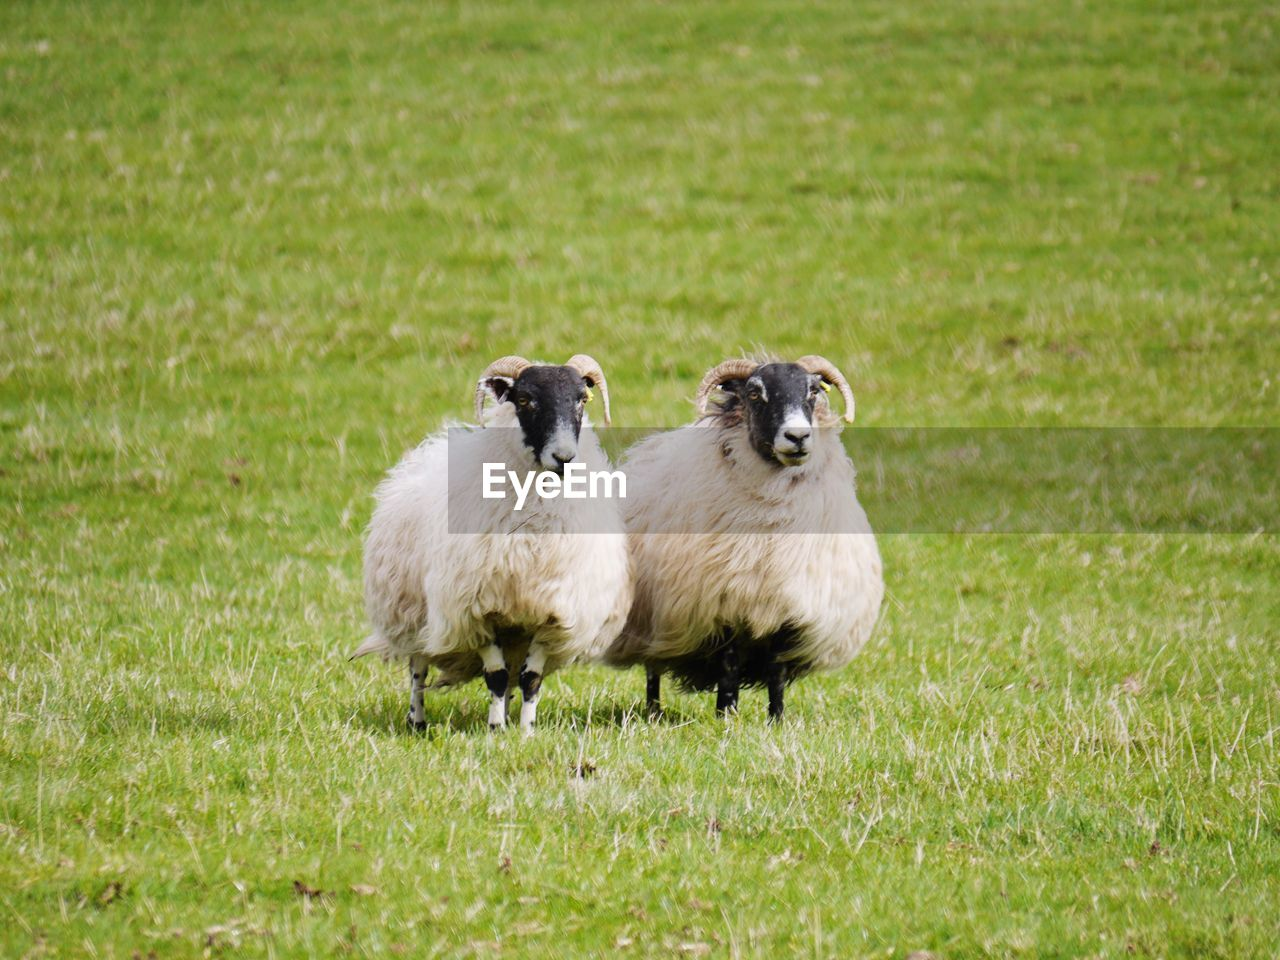 grass, animal themes, animal, group of animals, plant, mammal, field, young animal, land, green color, domestic animals, sheep, livestock, pets, no people, nature, domestic, vertebrate, day, portrait, animal family